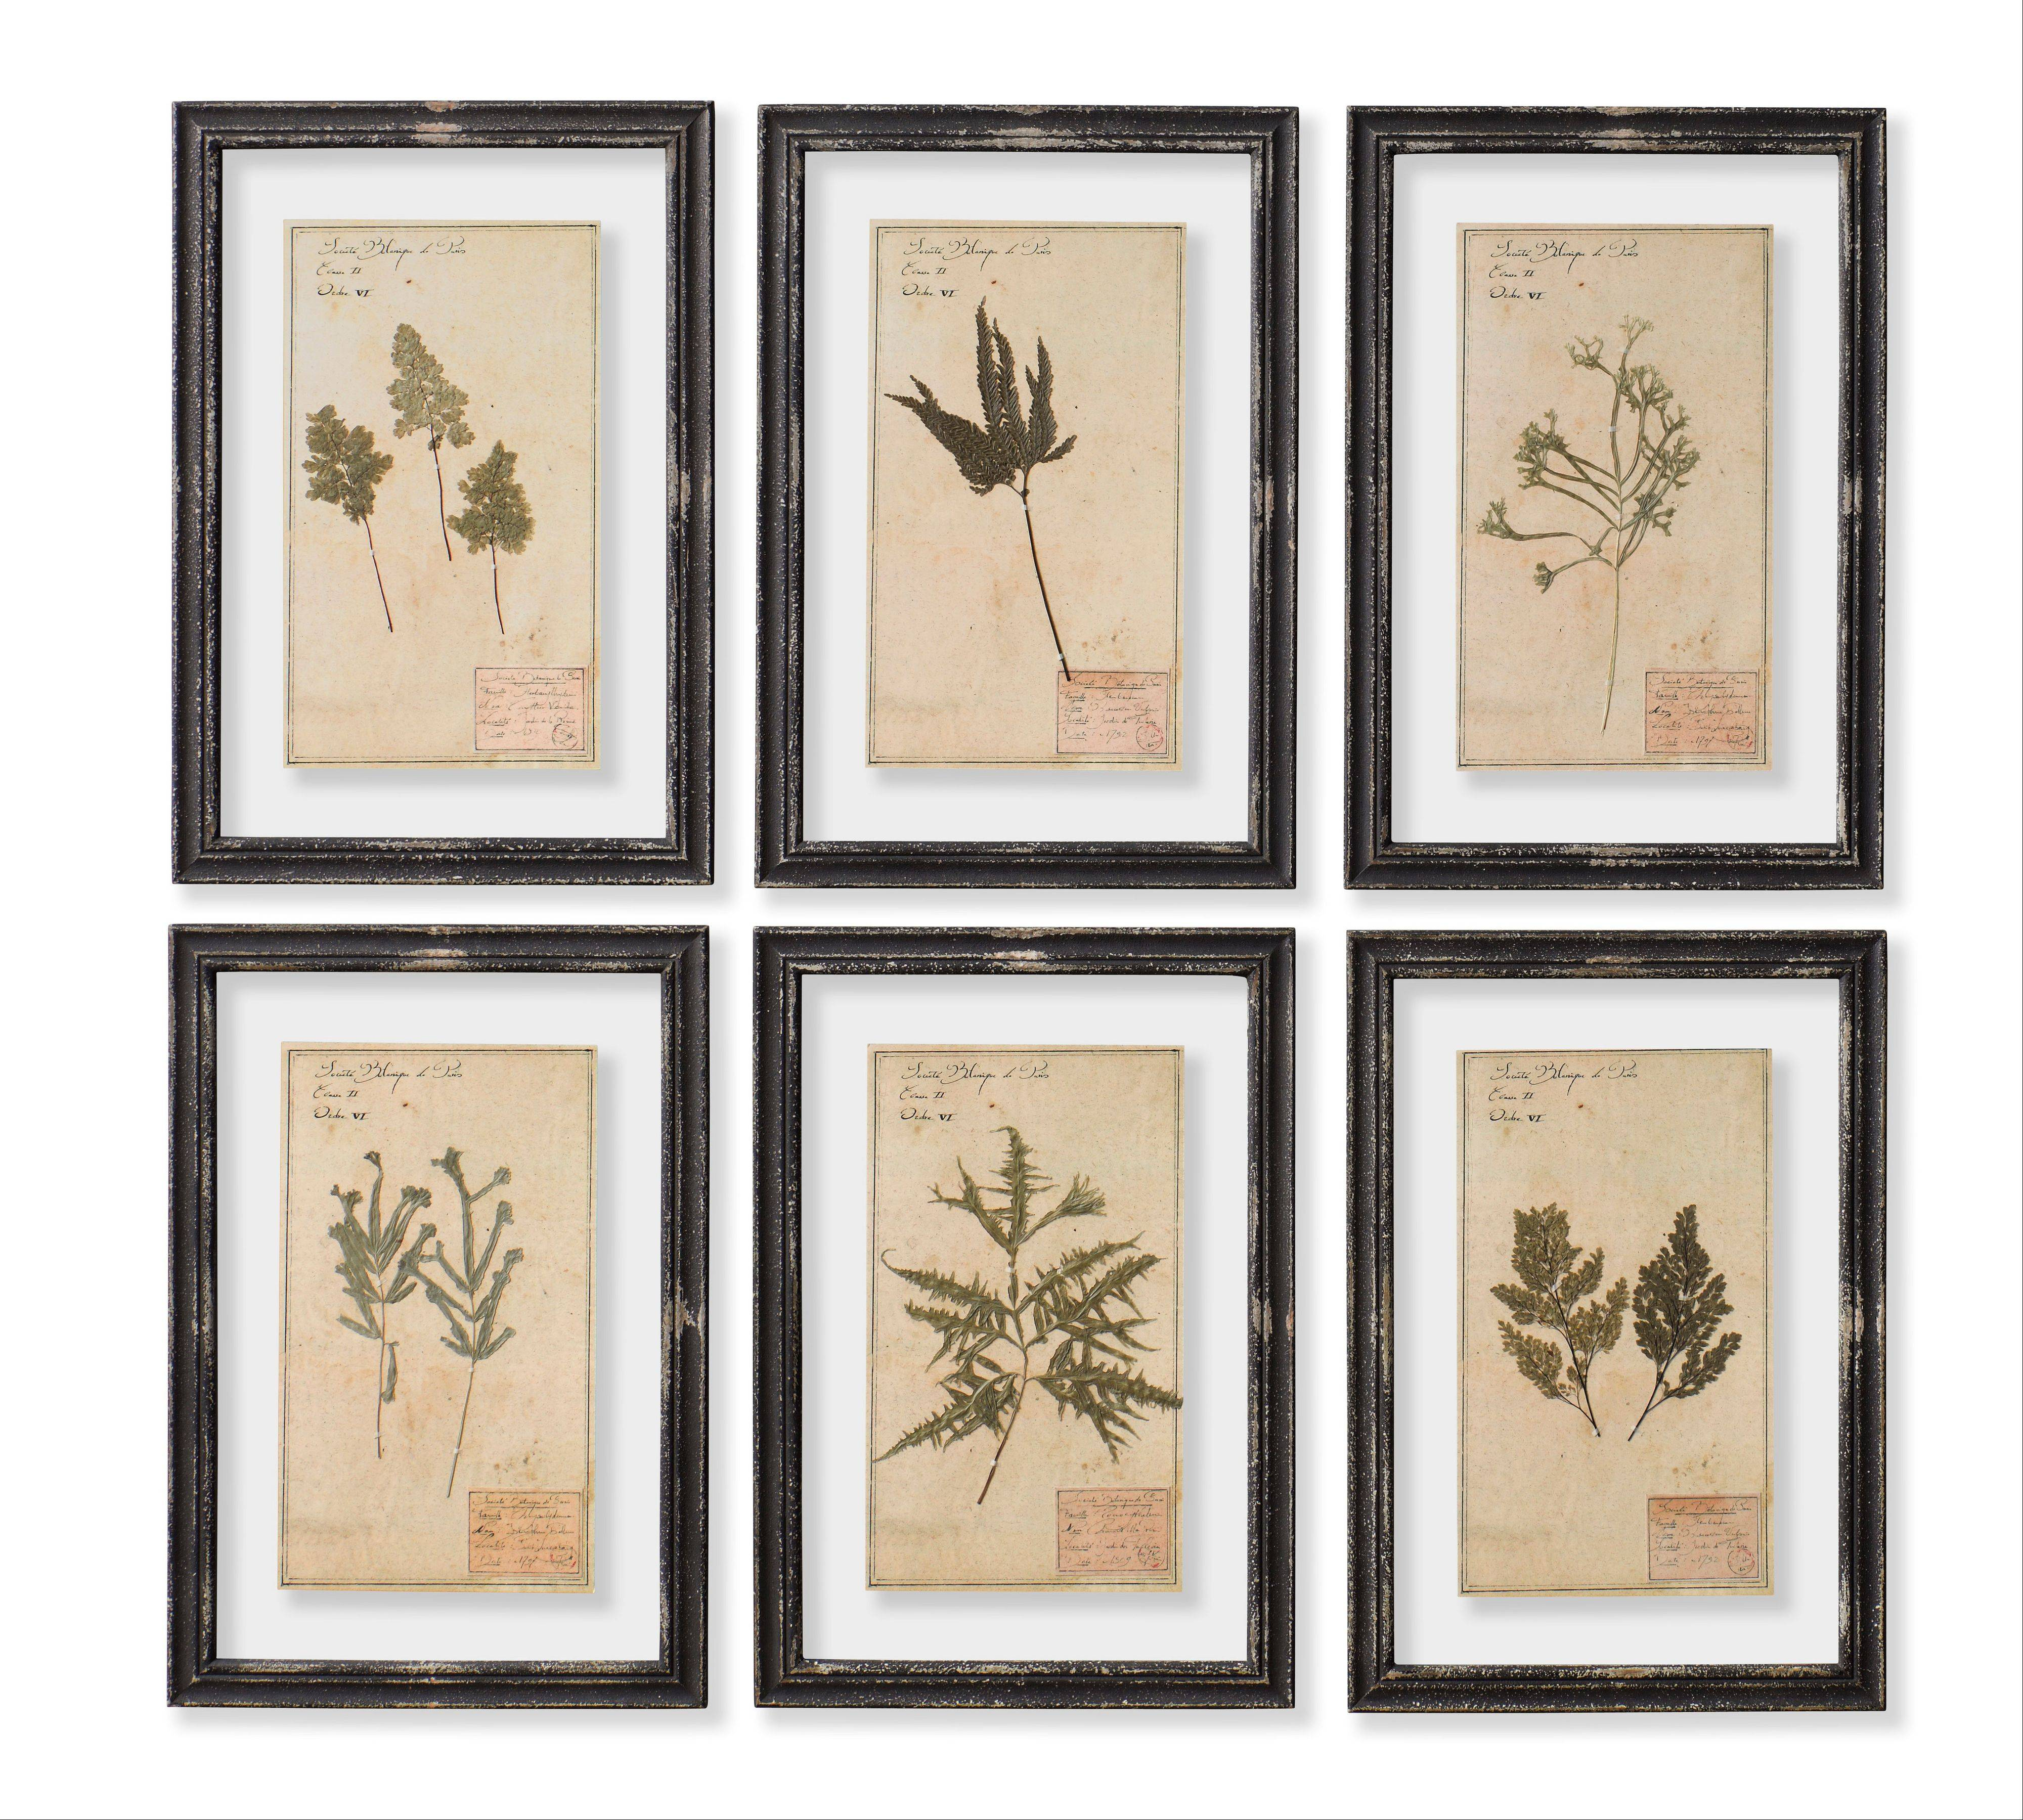 Nineteenth century framed herbarium prints mounted under glass from Restoration Hardware.